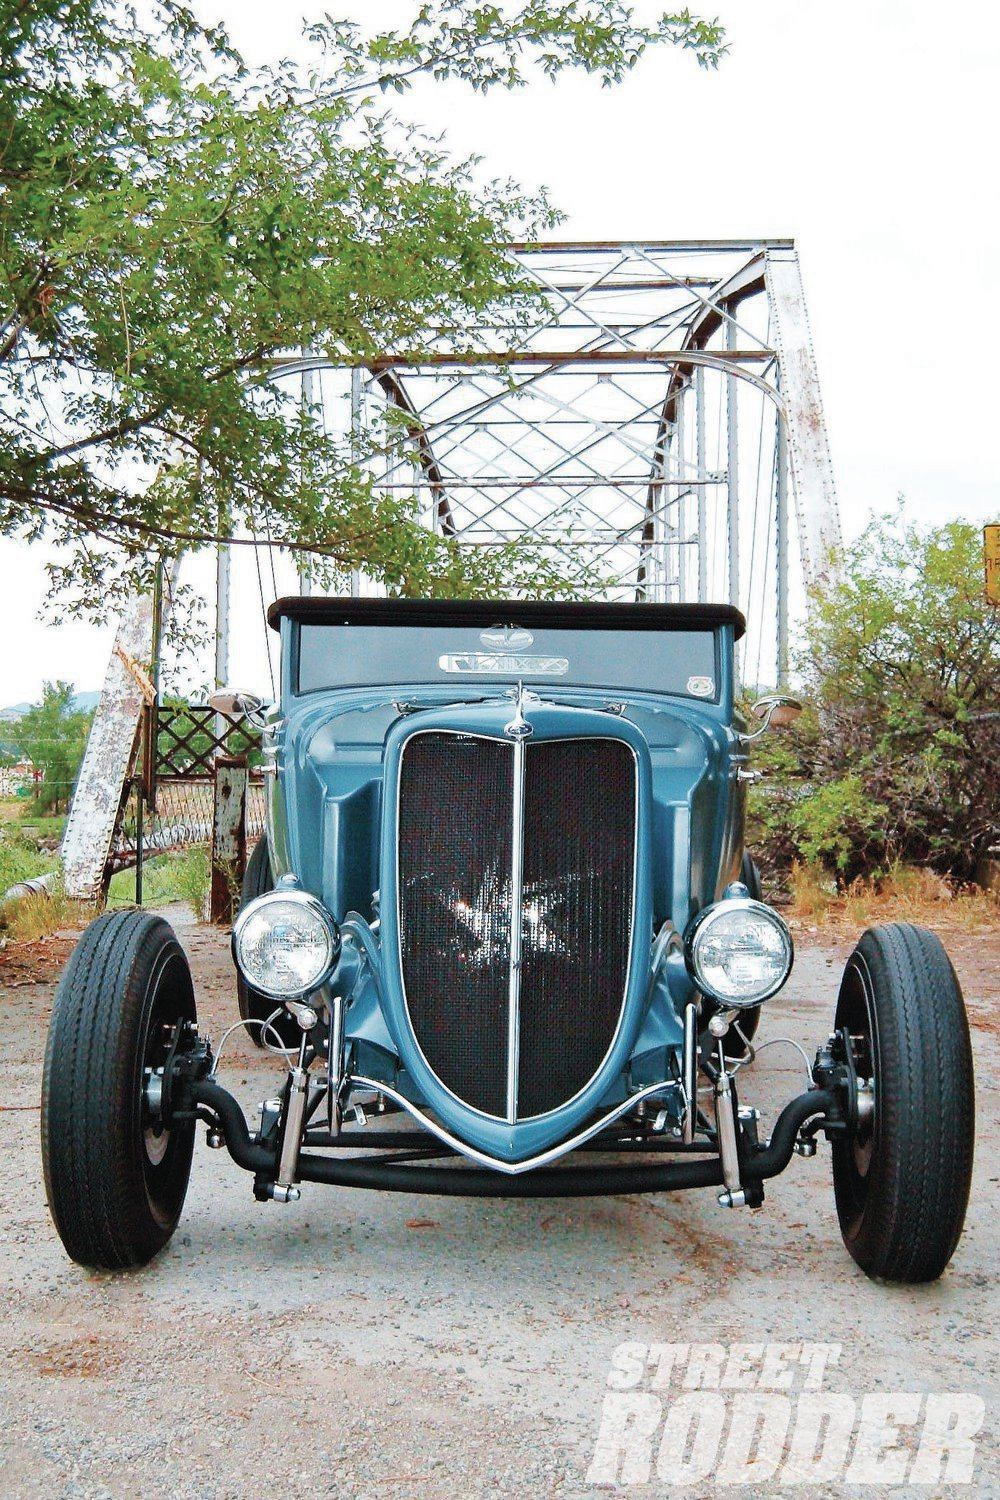 The grille used to be a mangled original, but Lane removed the ribs, straightened the perimeter, and added tabs to the inside edge of the grille so he could attach a stainless steel mesh insert he had made, adding the center bar afterward.